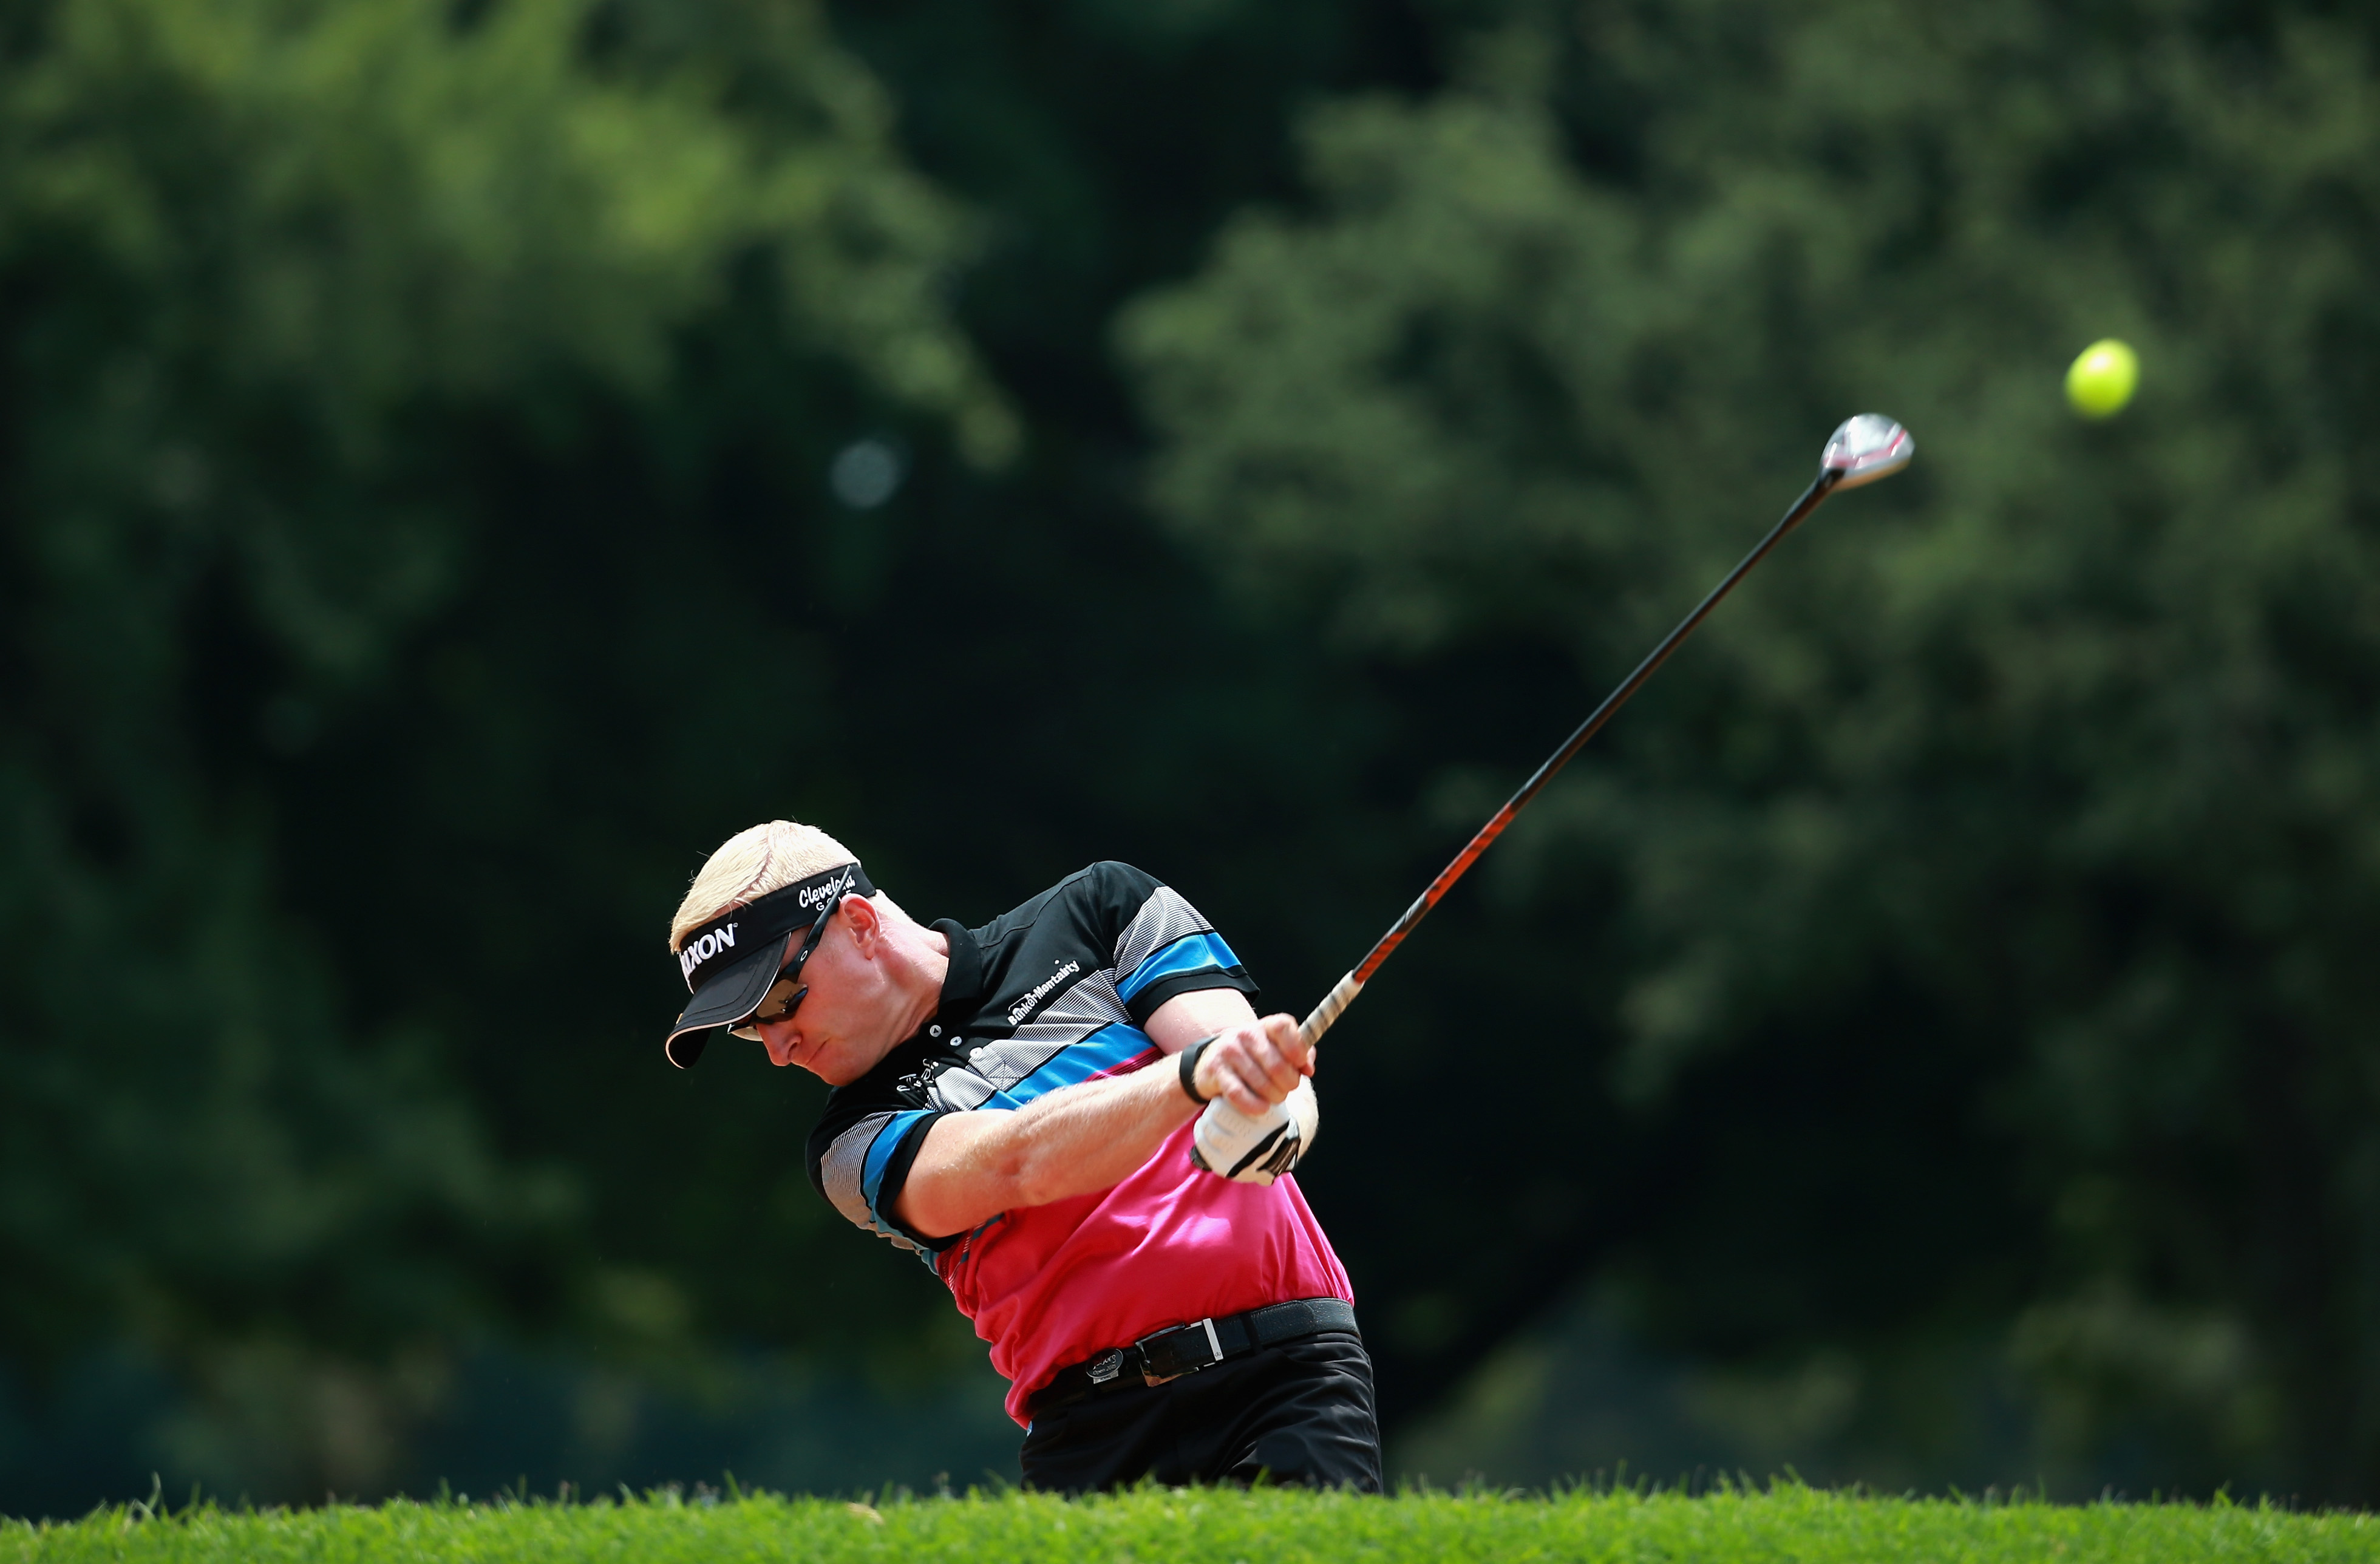 Don't always hit the driver, says Simon Dyson (Photo: Getty Images)